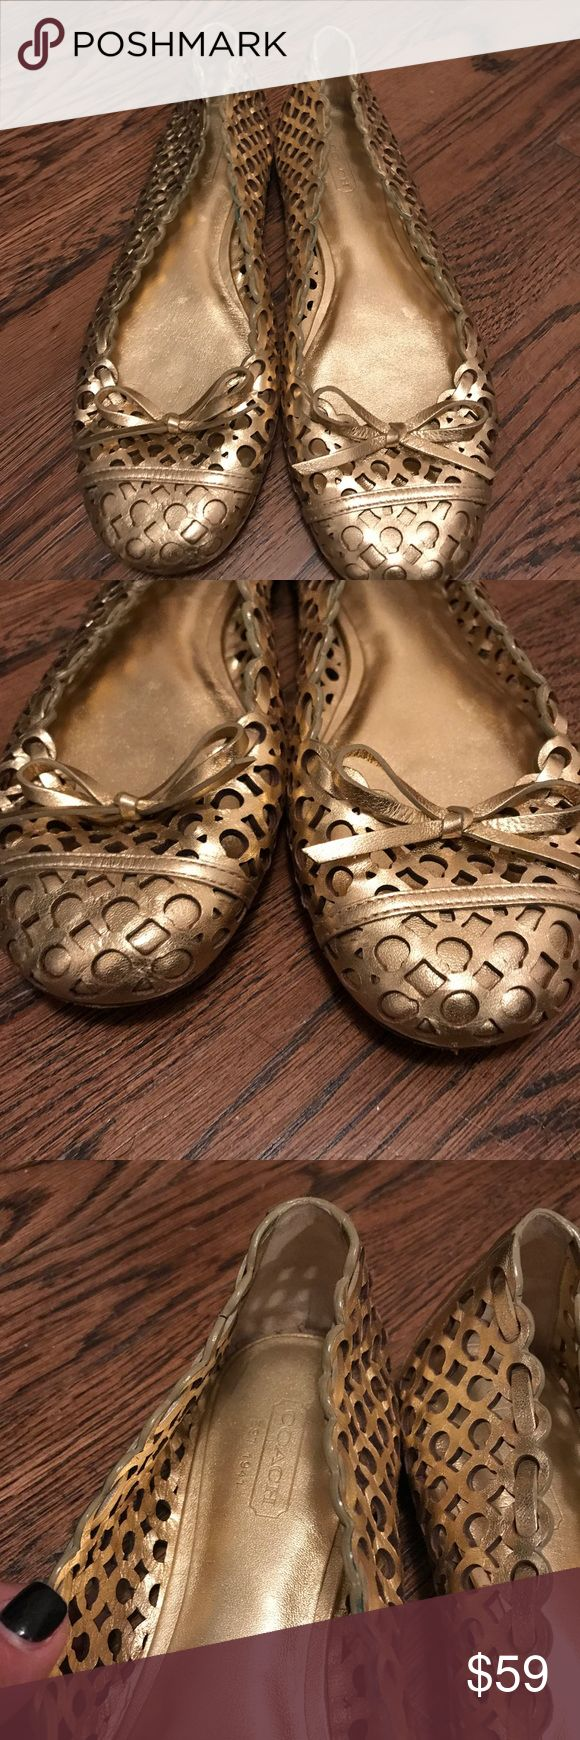 Coach gold ballet flats Comfortable, great coach gold ballet flat! Coach Shoes Flats & Loafers